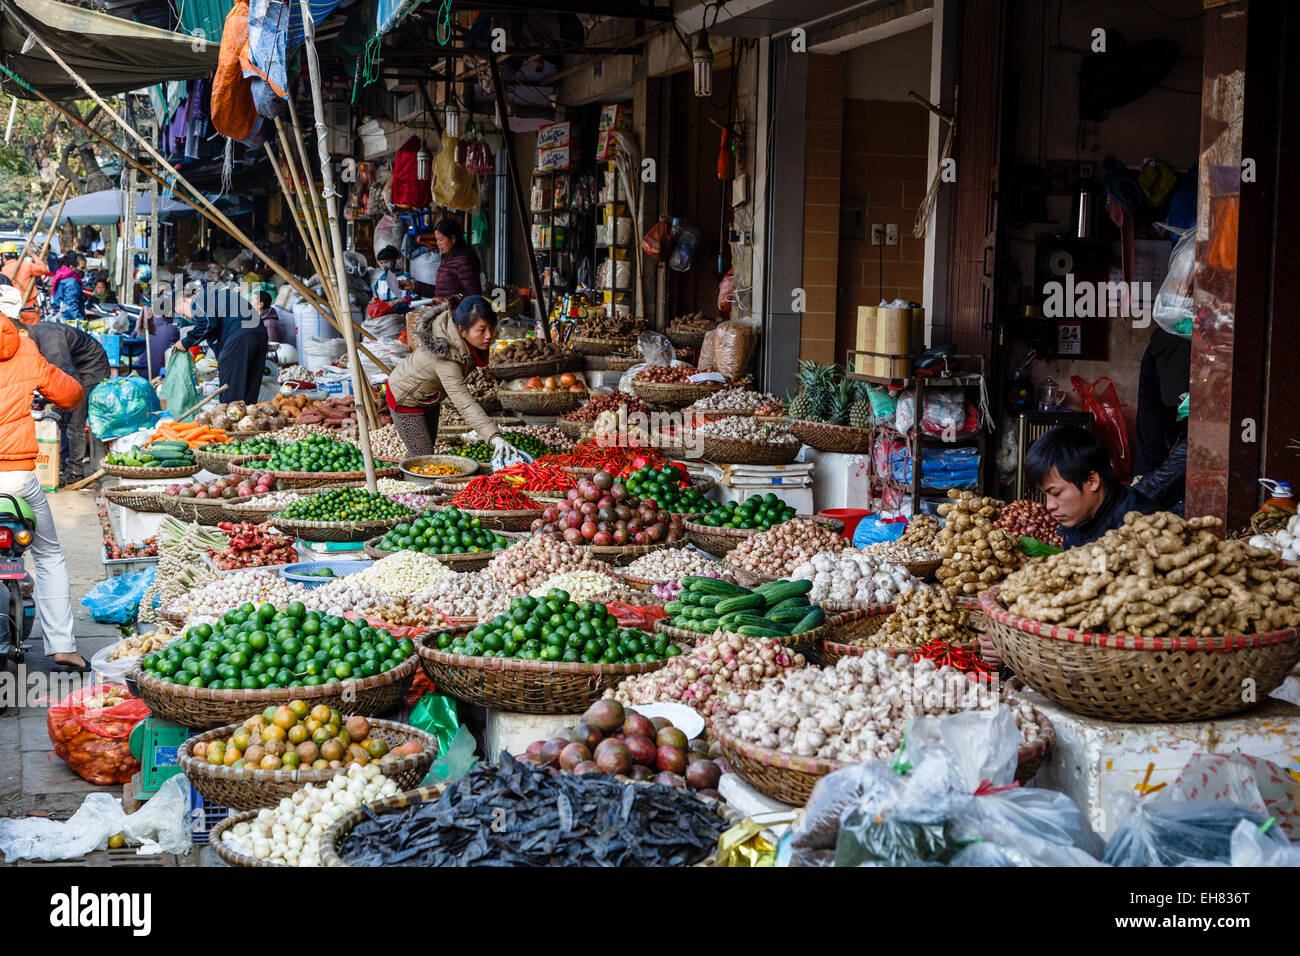 Market in the old quarter, Hanoi, Vietnam, Indochina, Southeast Asia, Asia - Stock Image